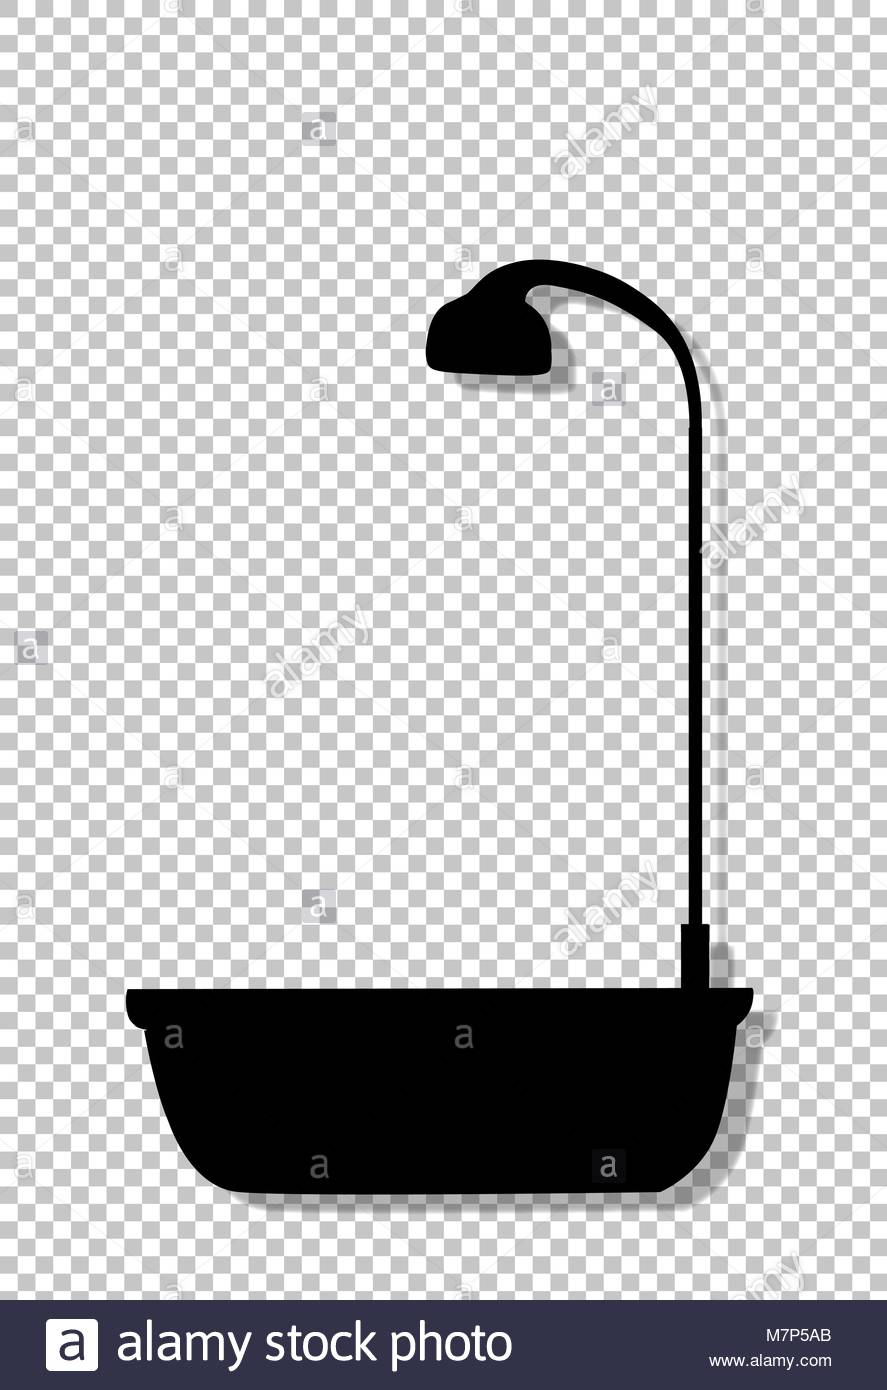 shower tub clipart. Black Silhouette Of Bathtub With Shower Head Icon Isolated On Transparent Background. Bath Time Vector Illustration, Logo, Icon, Clip Art For Design Tub Clipart